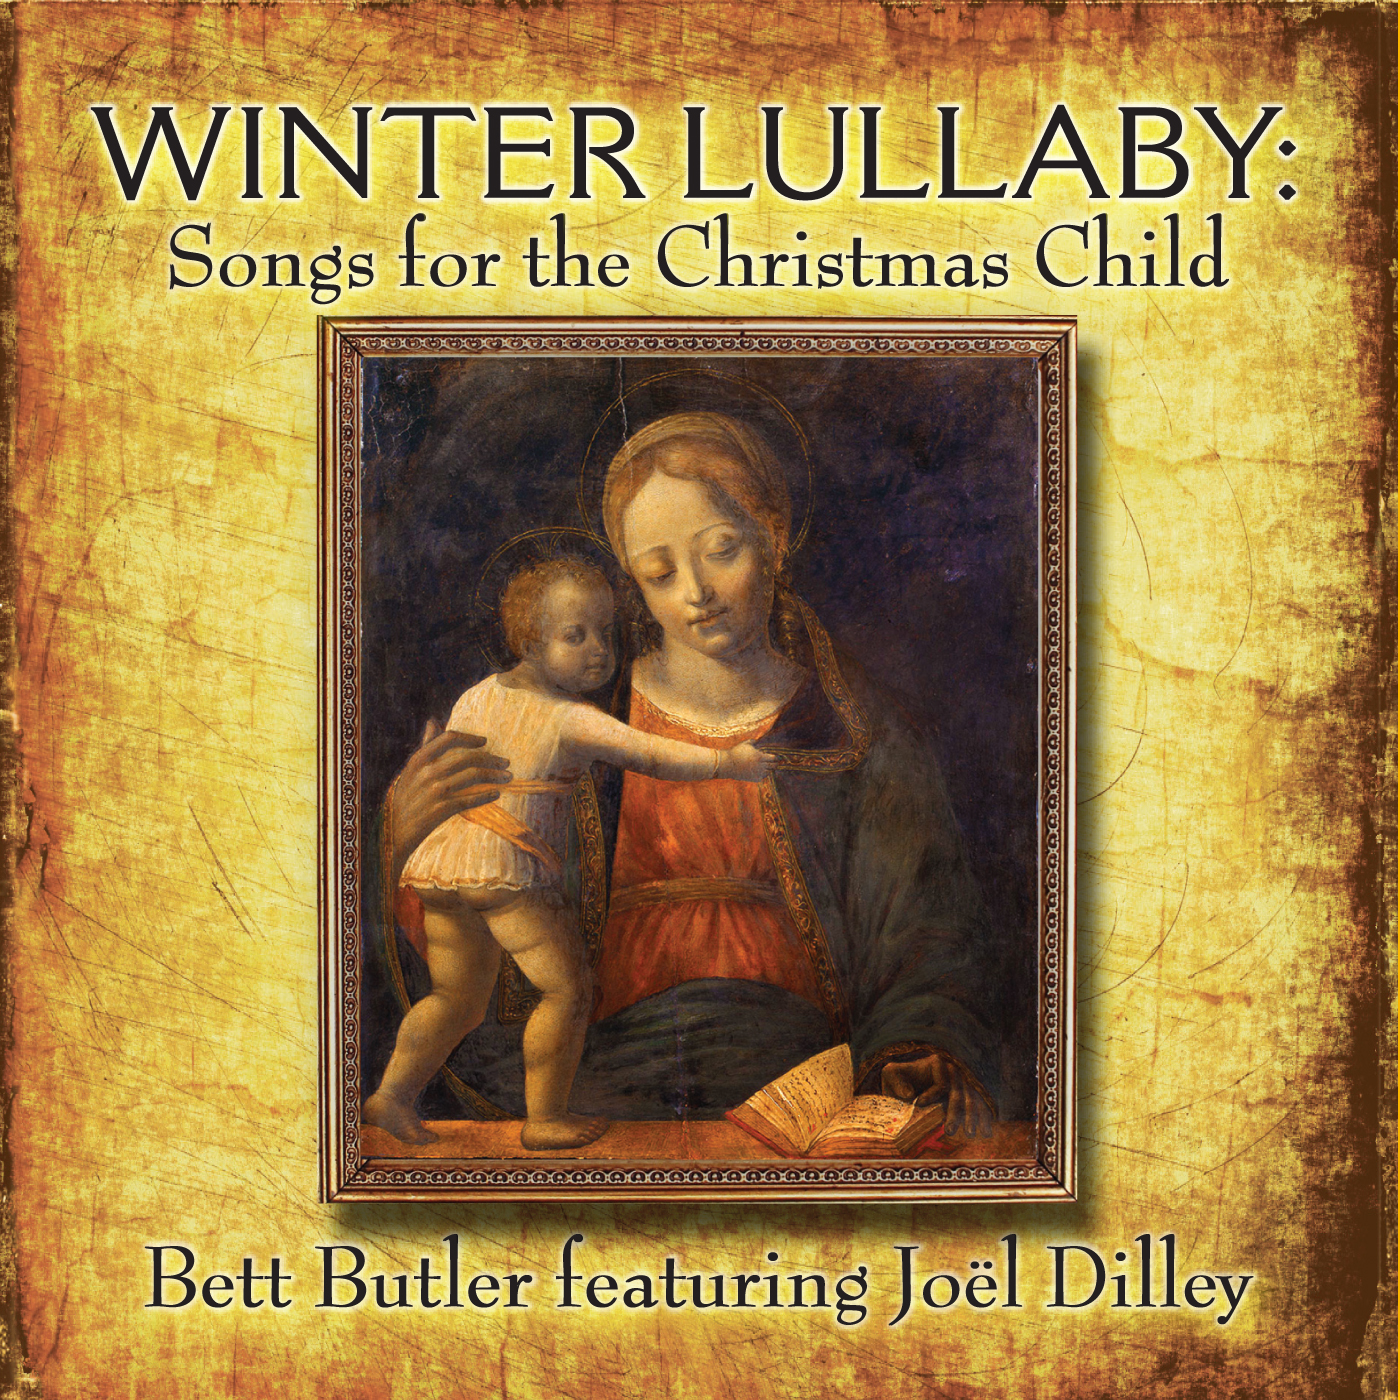 Winter Lullaby: Songs for the Christmas Child